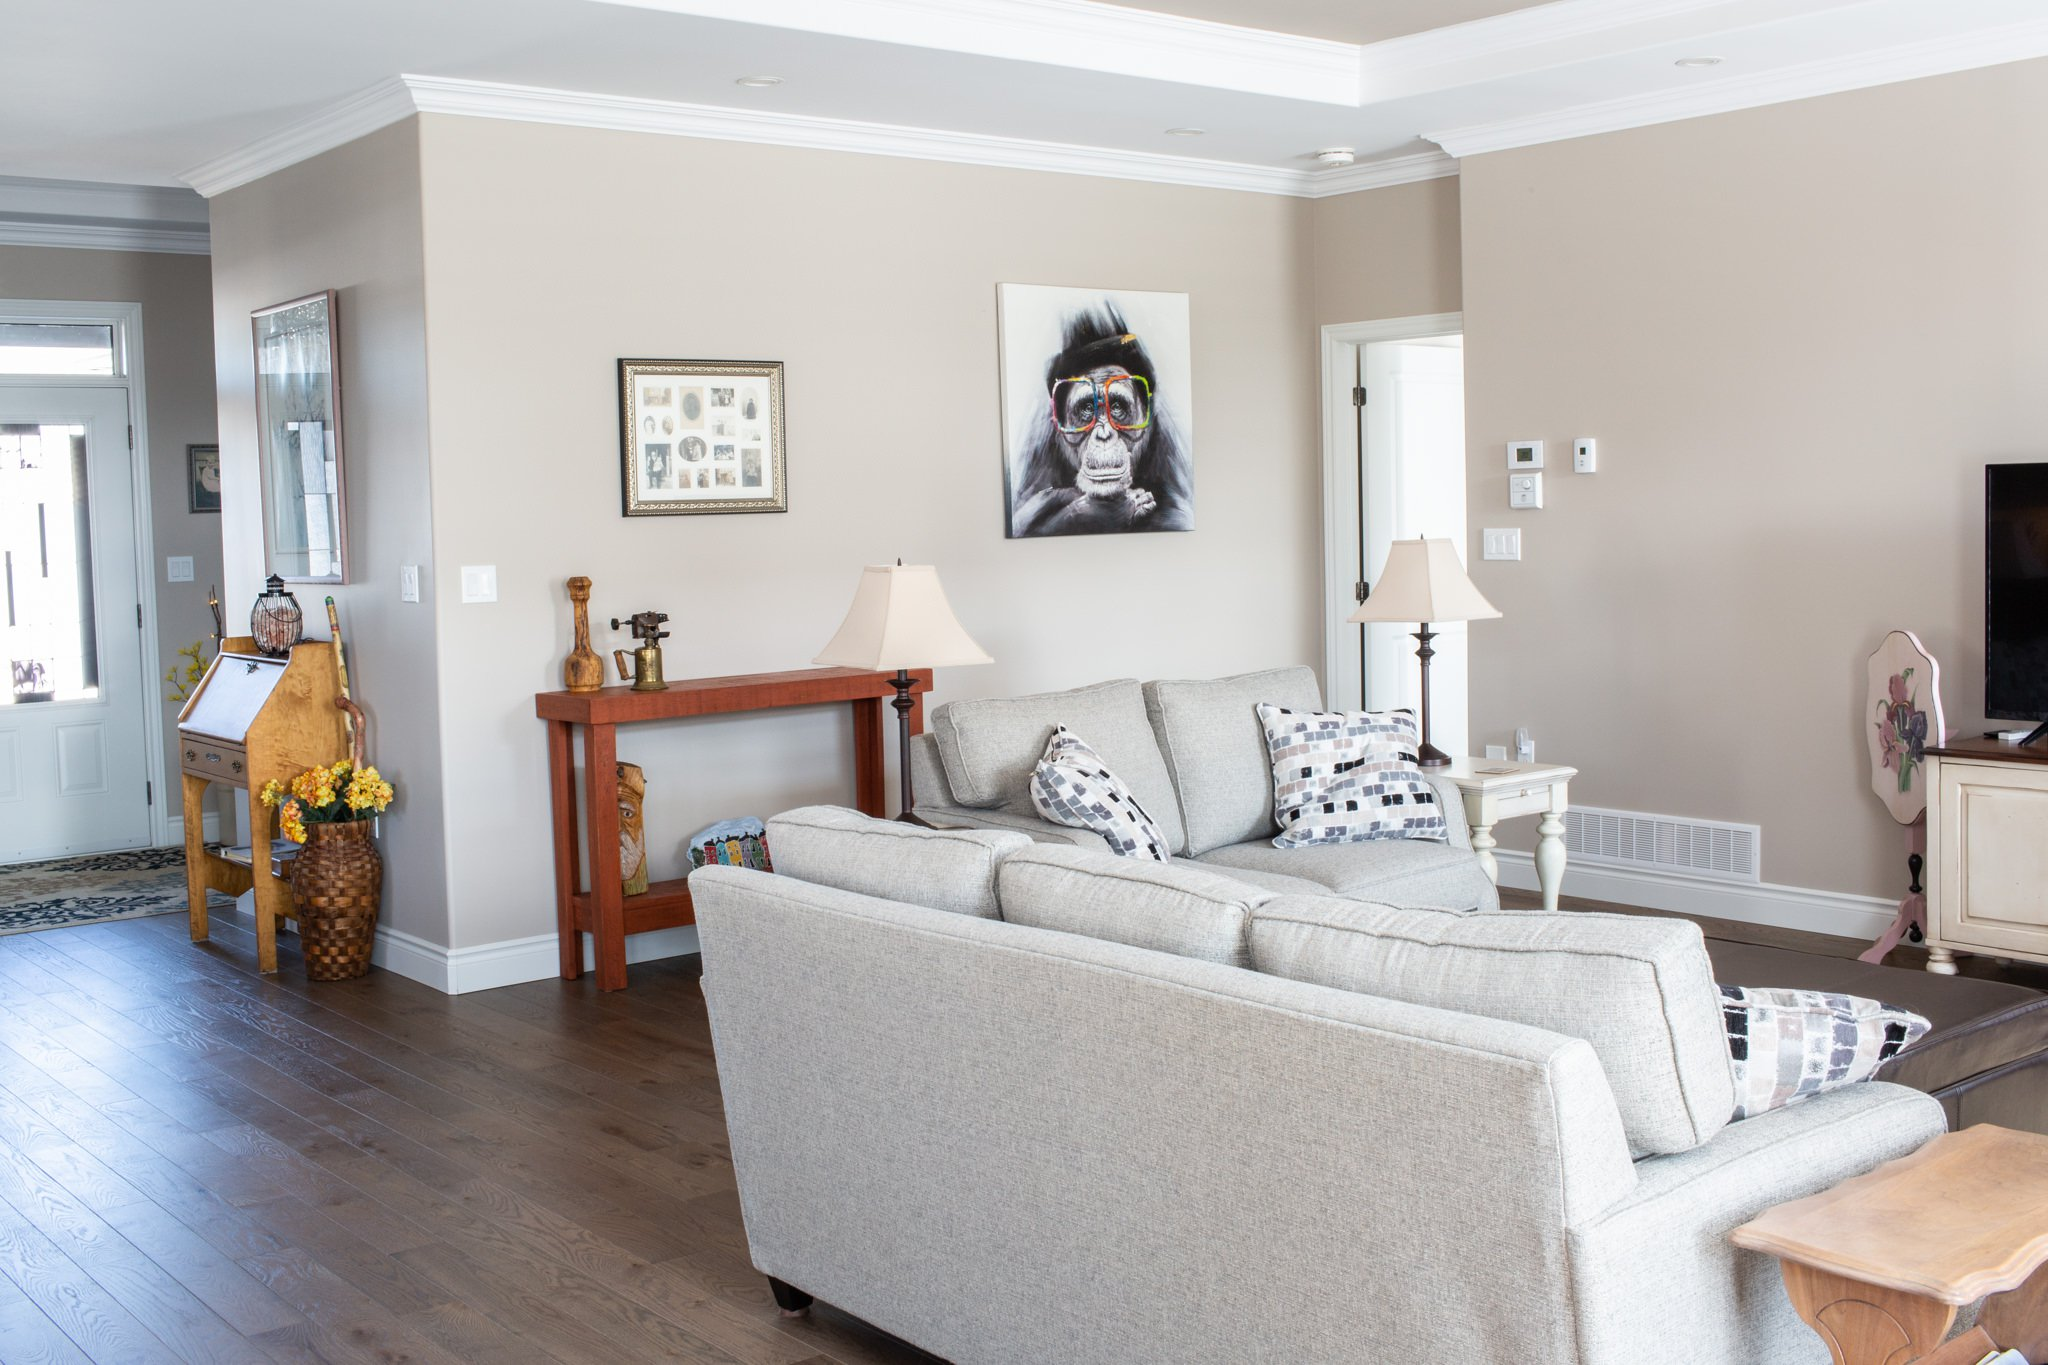 Photo 9: Photos: 70 Shewman Road in Brighton: Residential Detached for sale : MLS®# 184430